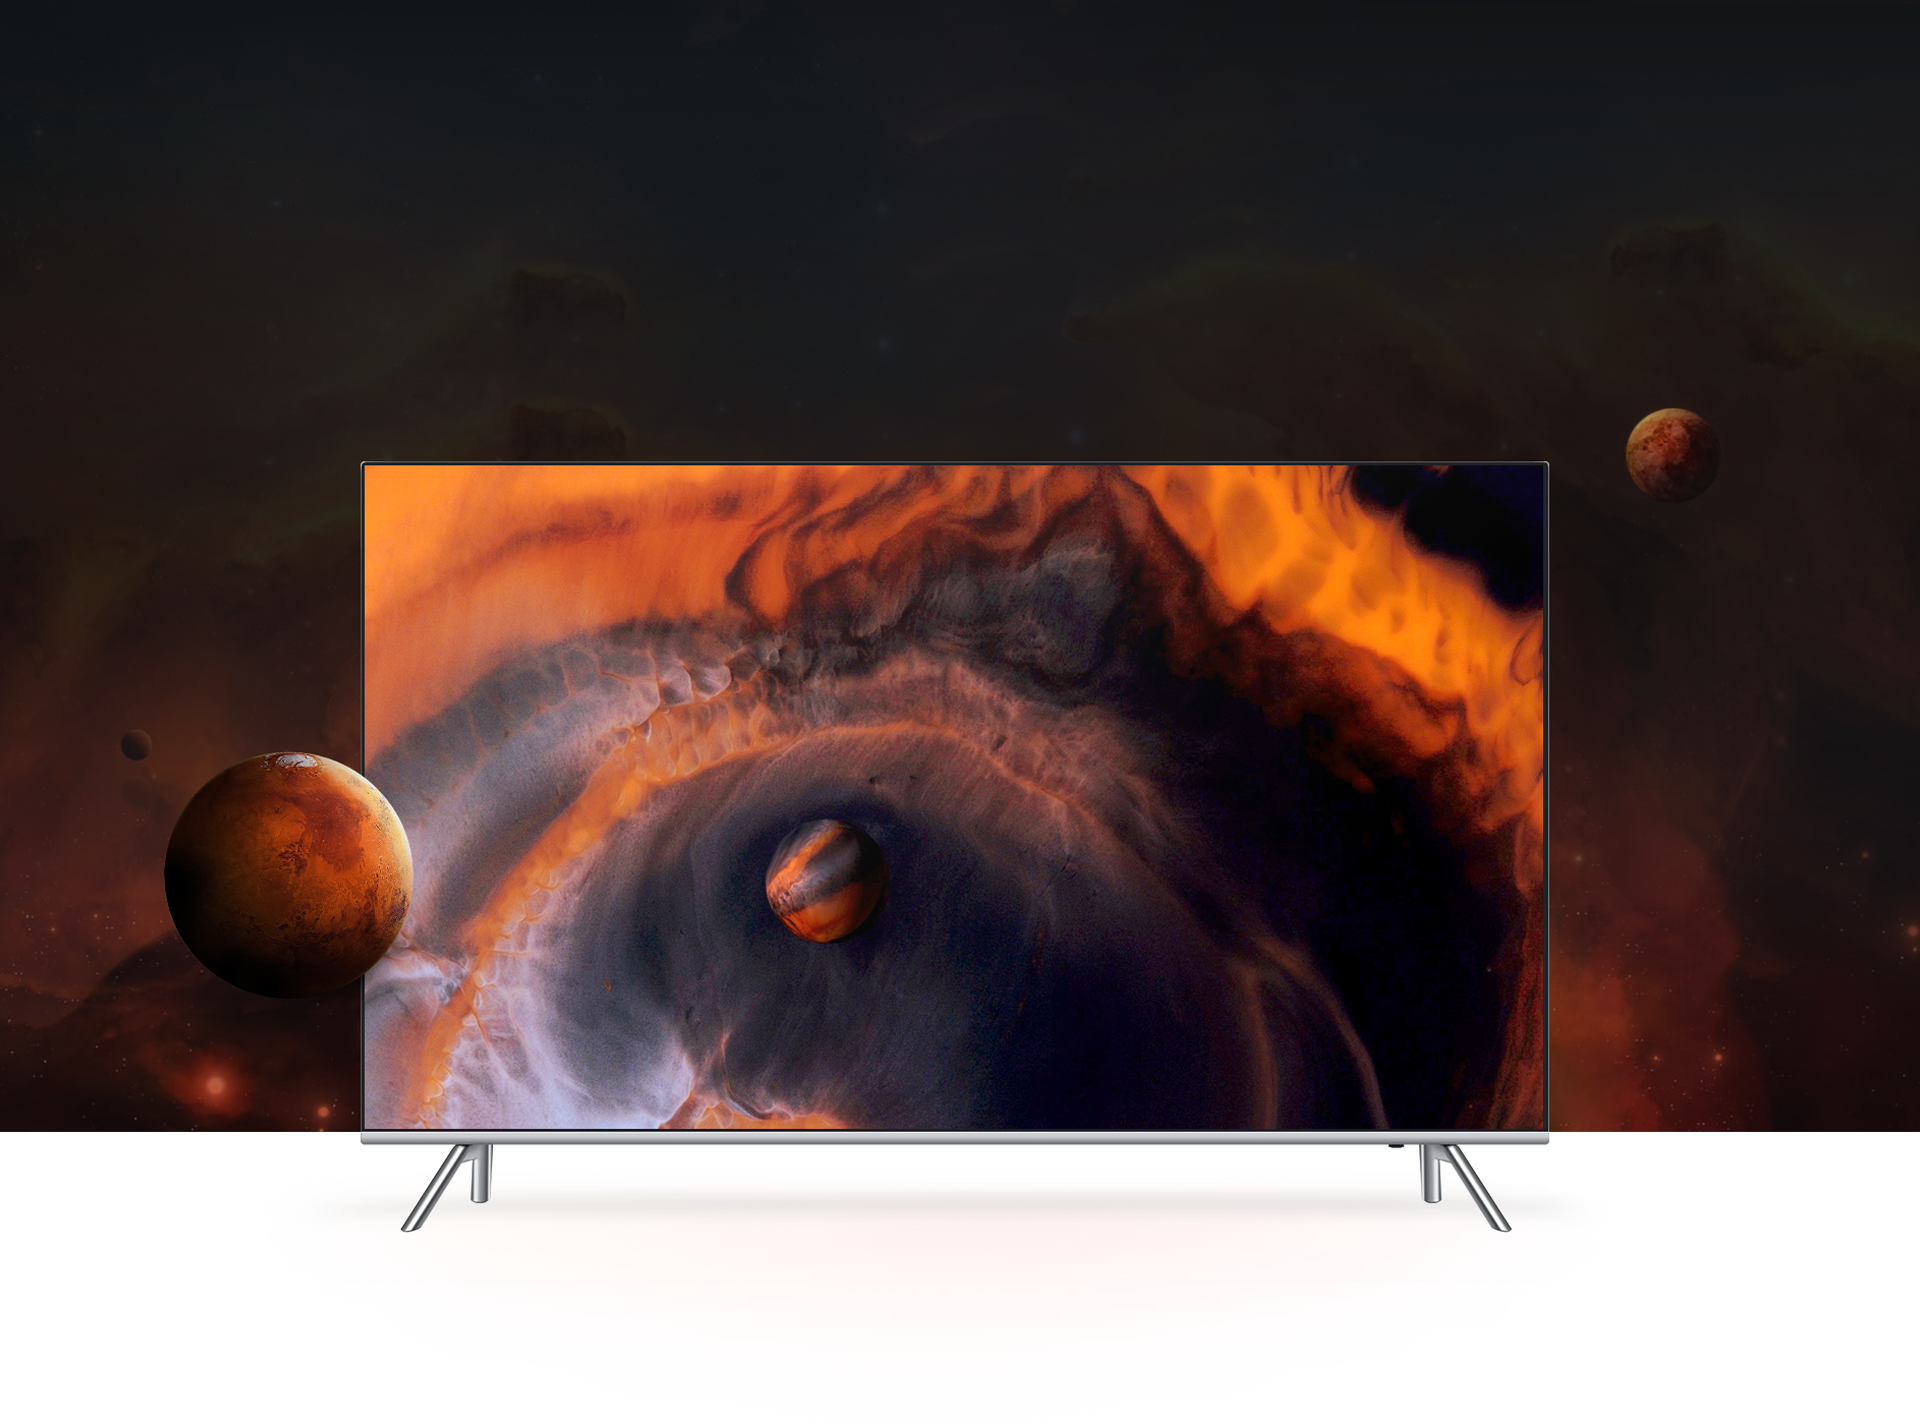 MediaTek Powers the TV Brands You Love